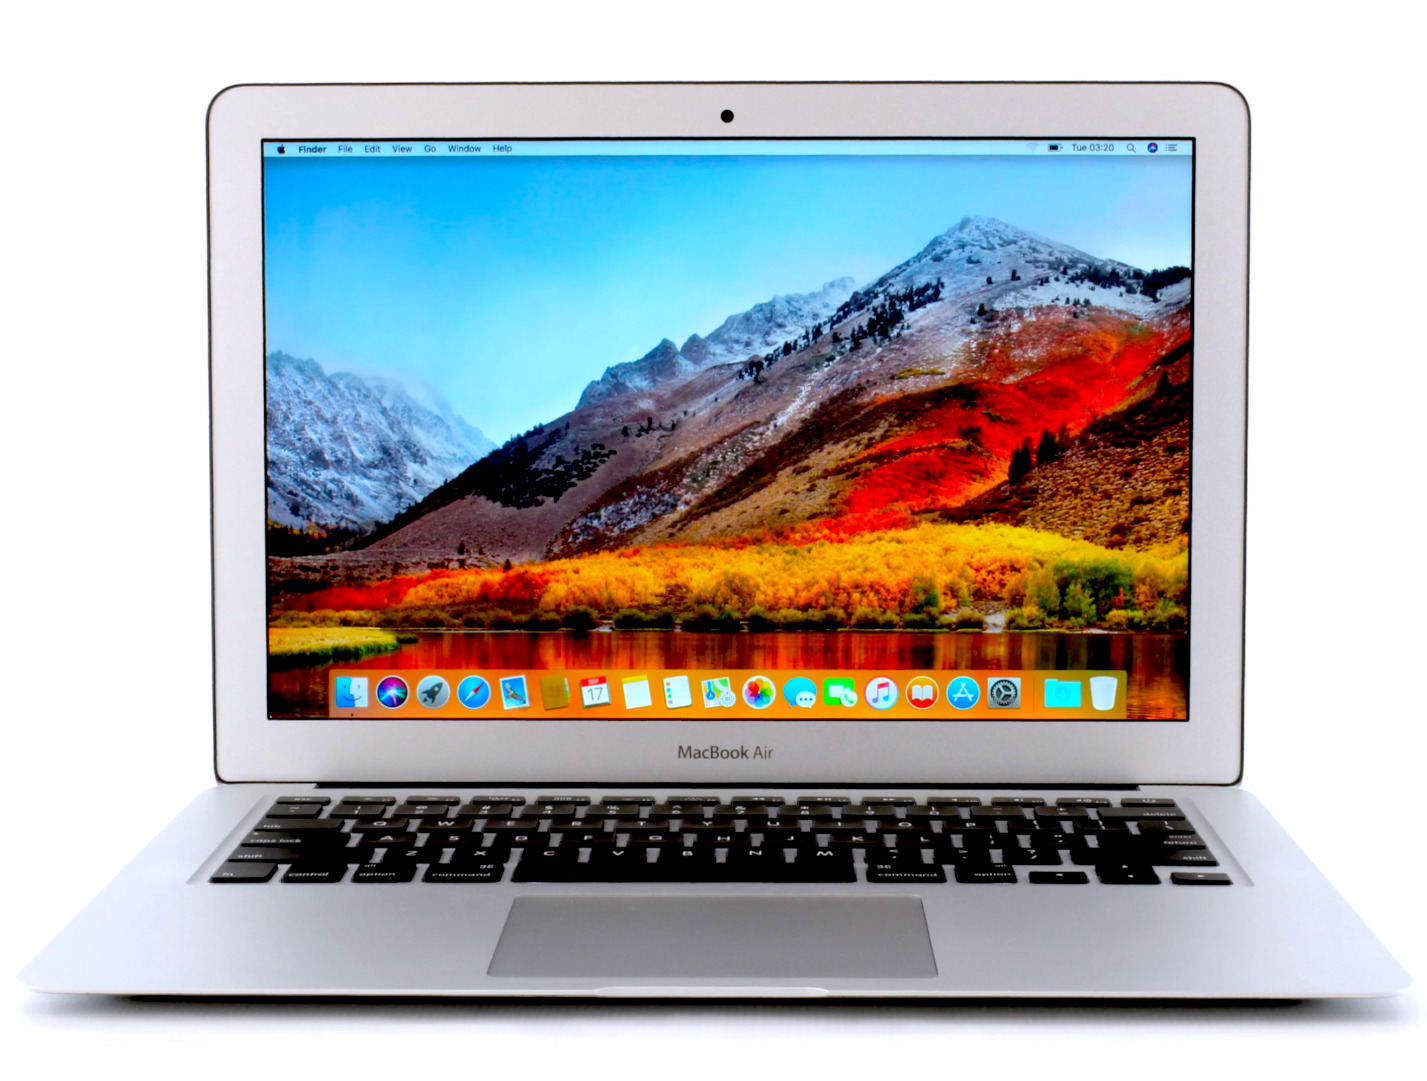 Apple MacBook Air 13-inch | OS2019 | EXCELLENT CONDITION | 256GB SSD | GRAY. Buy it now for 629.00